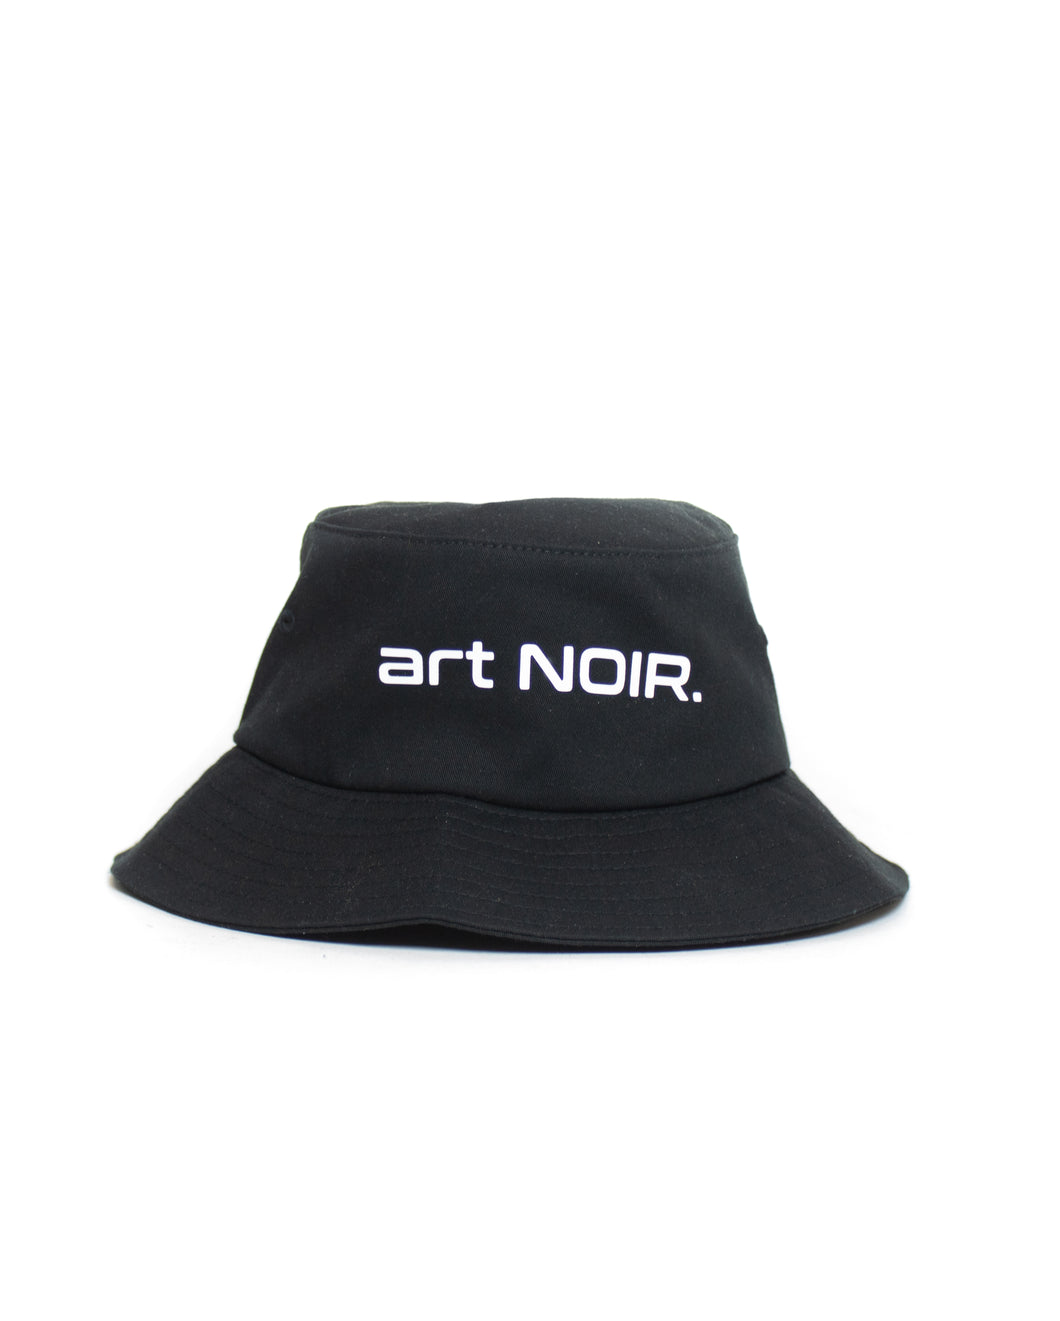 Black Bucket Hat art NOIR.